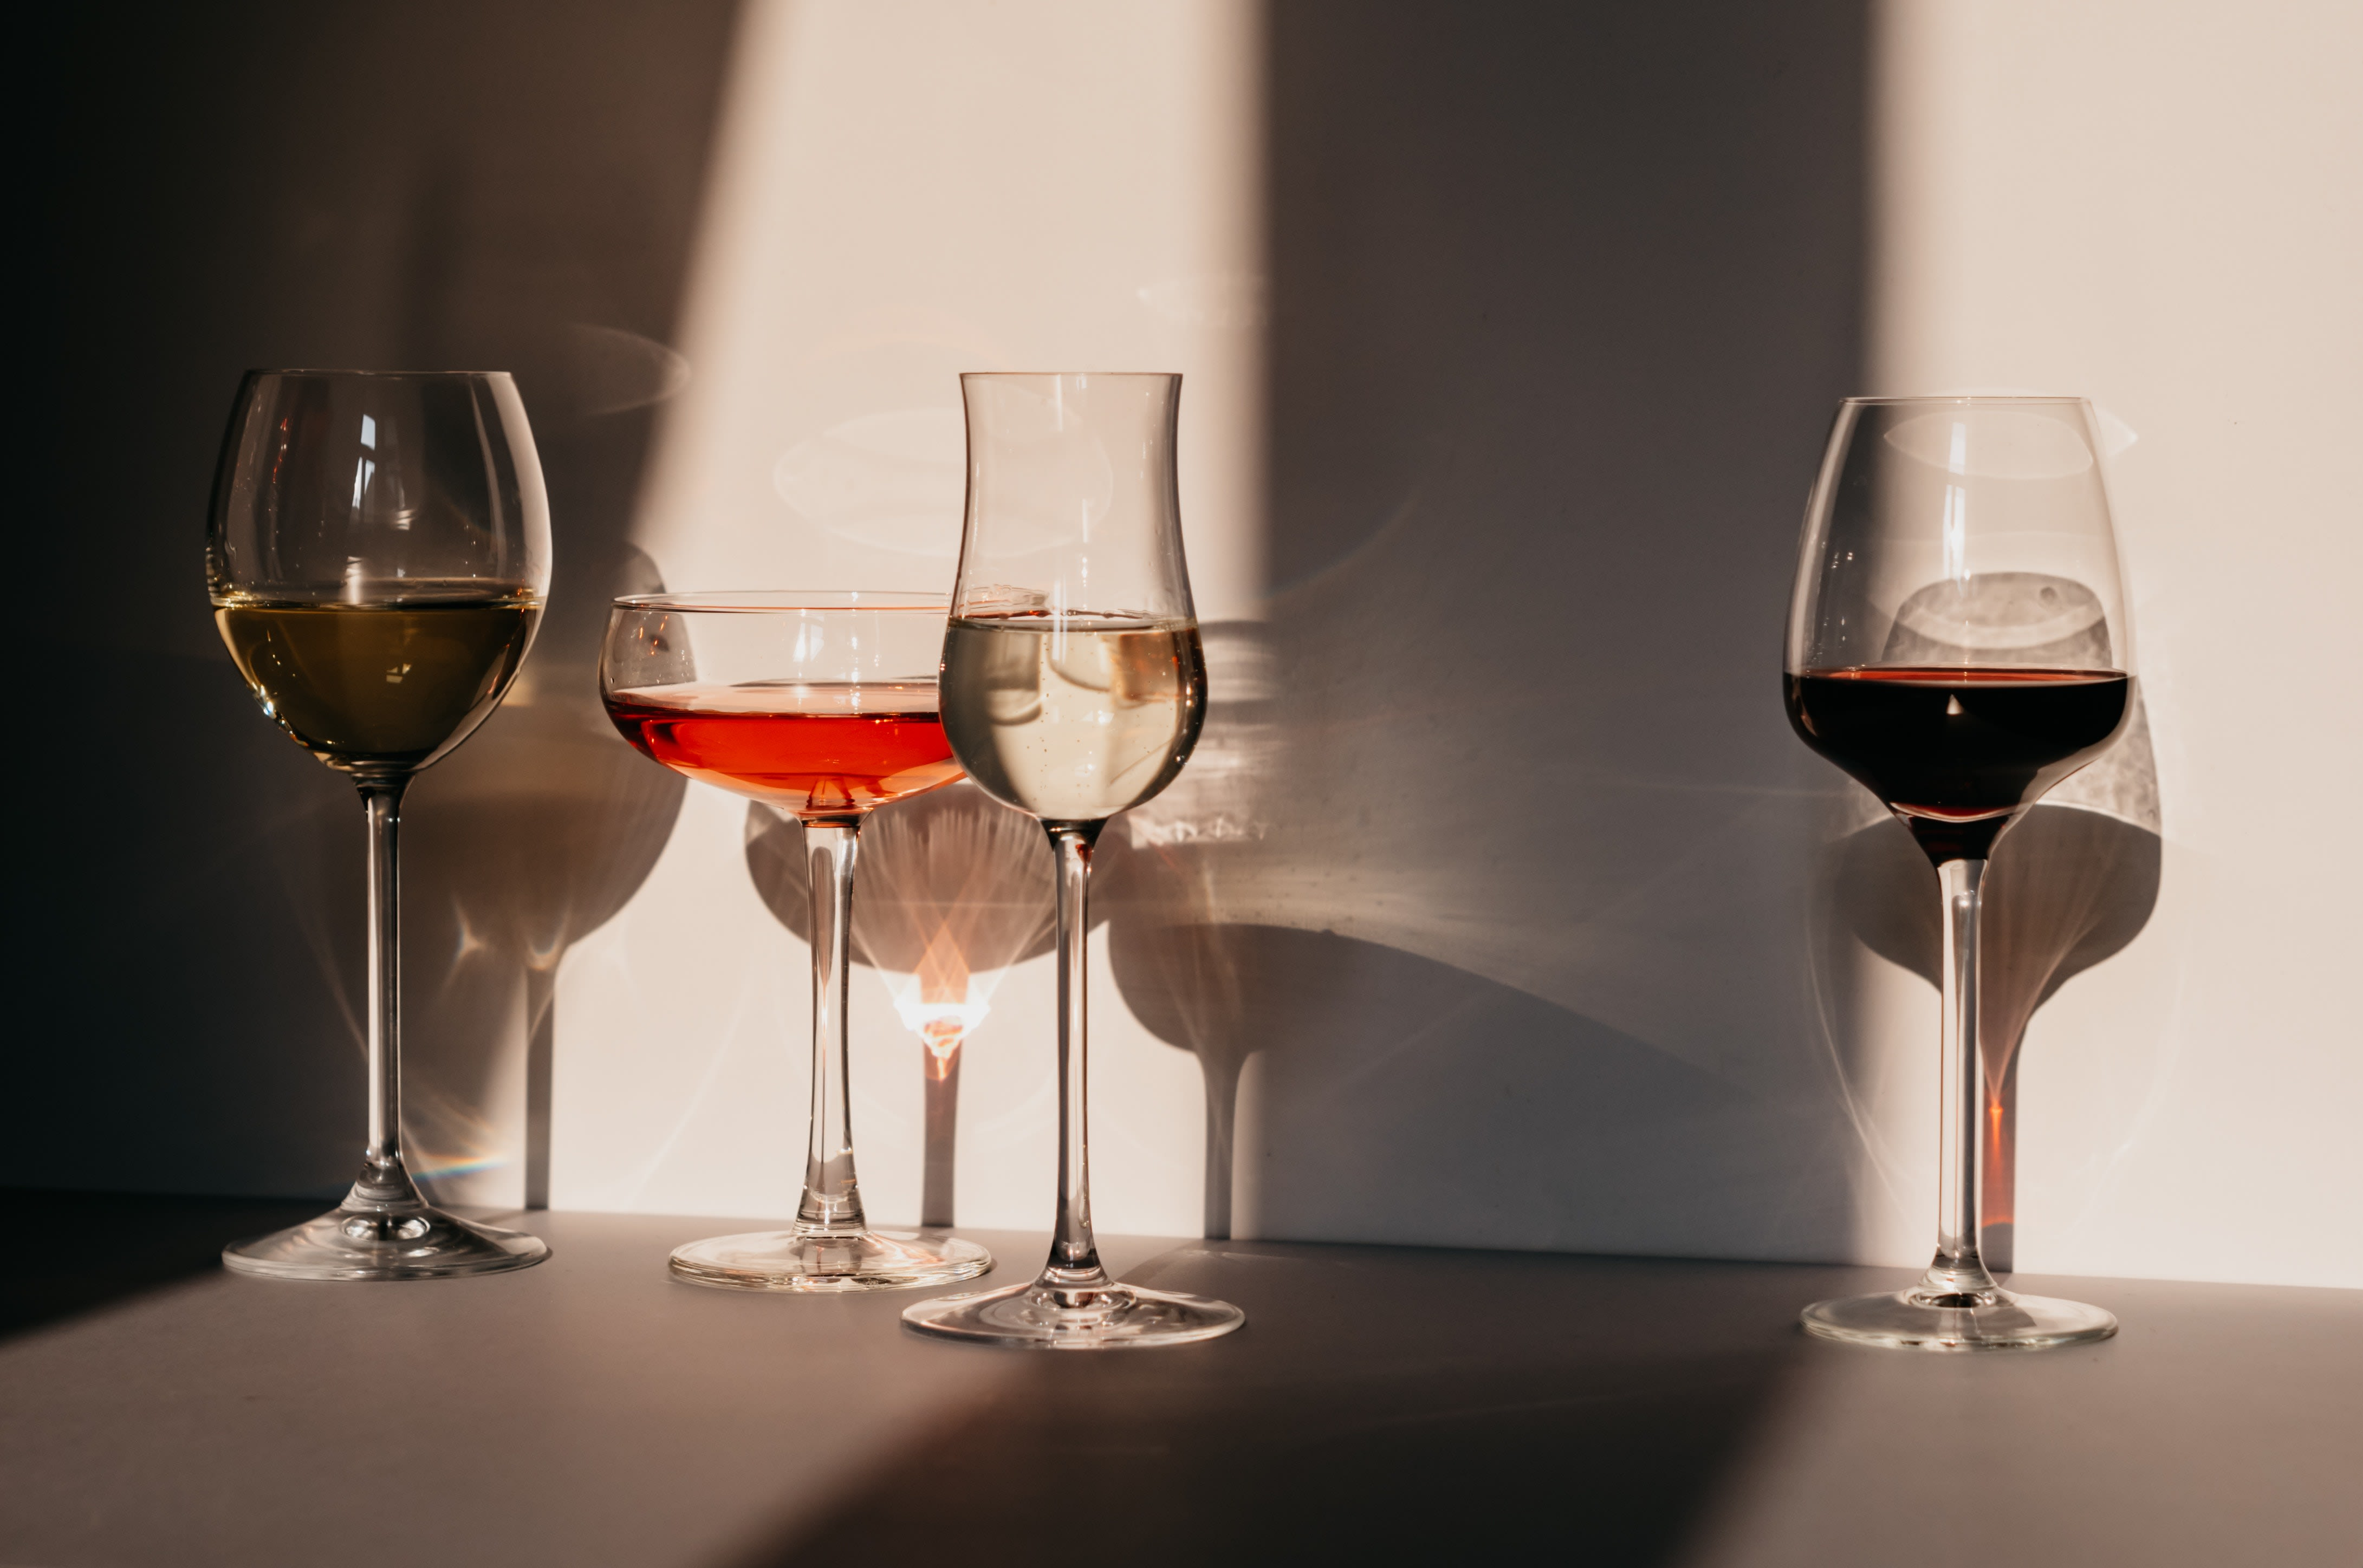 If You like This, Drink That: Alternative Wines to Try